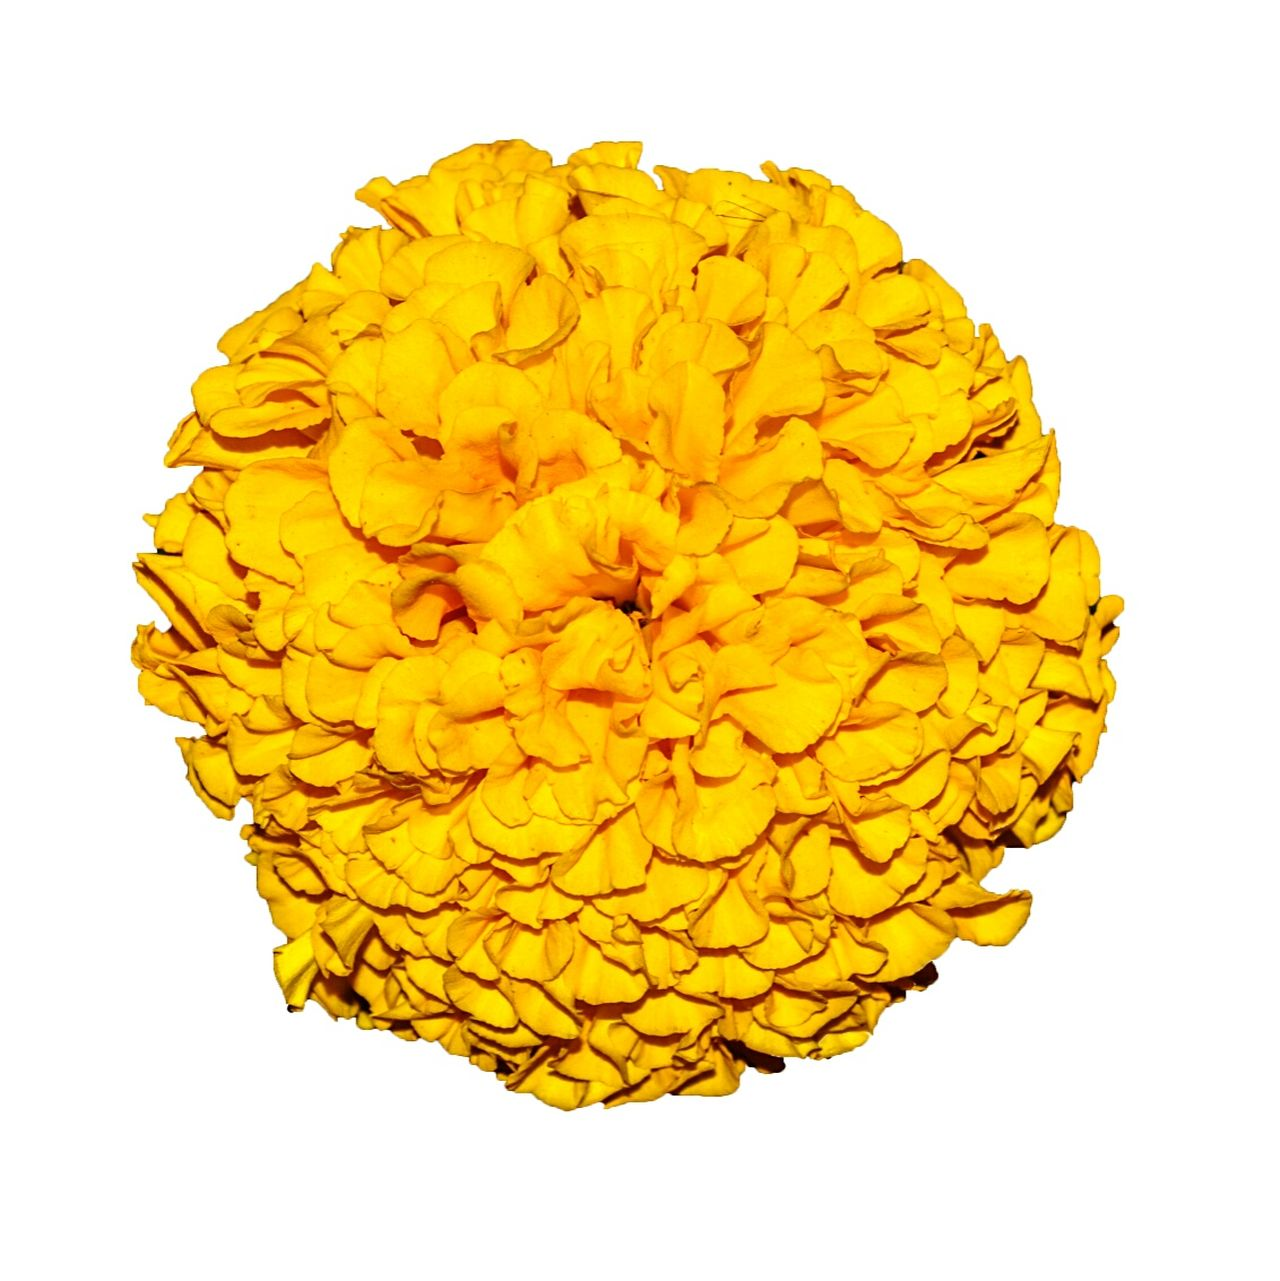 Yellow marigold flower isolated on white background. Marigold Marigold Flower Marigold🌻🌻 Marigoldflower Yellow Orange Flower Isolated On White Cutout Edit Cut Out Cut Out On White Flower Collection Flower Photography Flowers_collection Floweroftheday Calendula Officinalis Tagetes Dwarf Double Orange Marigold Yellow Marigolds Whorl Botany EyeEm Flowers Collection Flower Fantasy Flowers In My Garden Flower Collection Single Flower